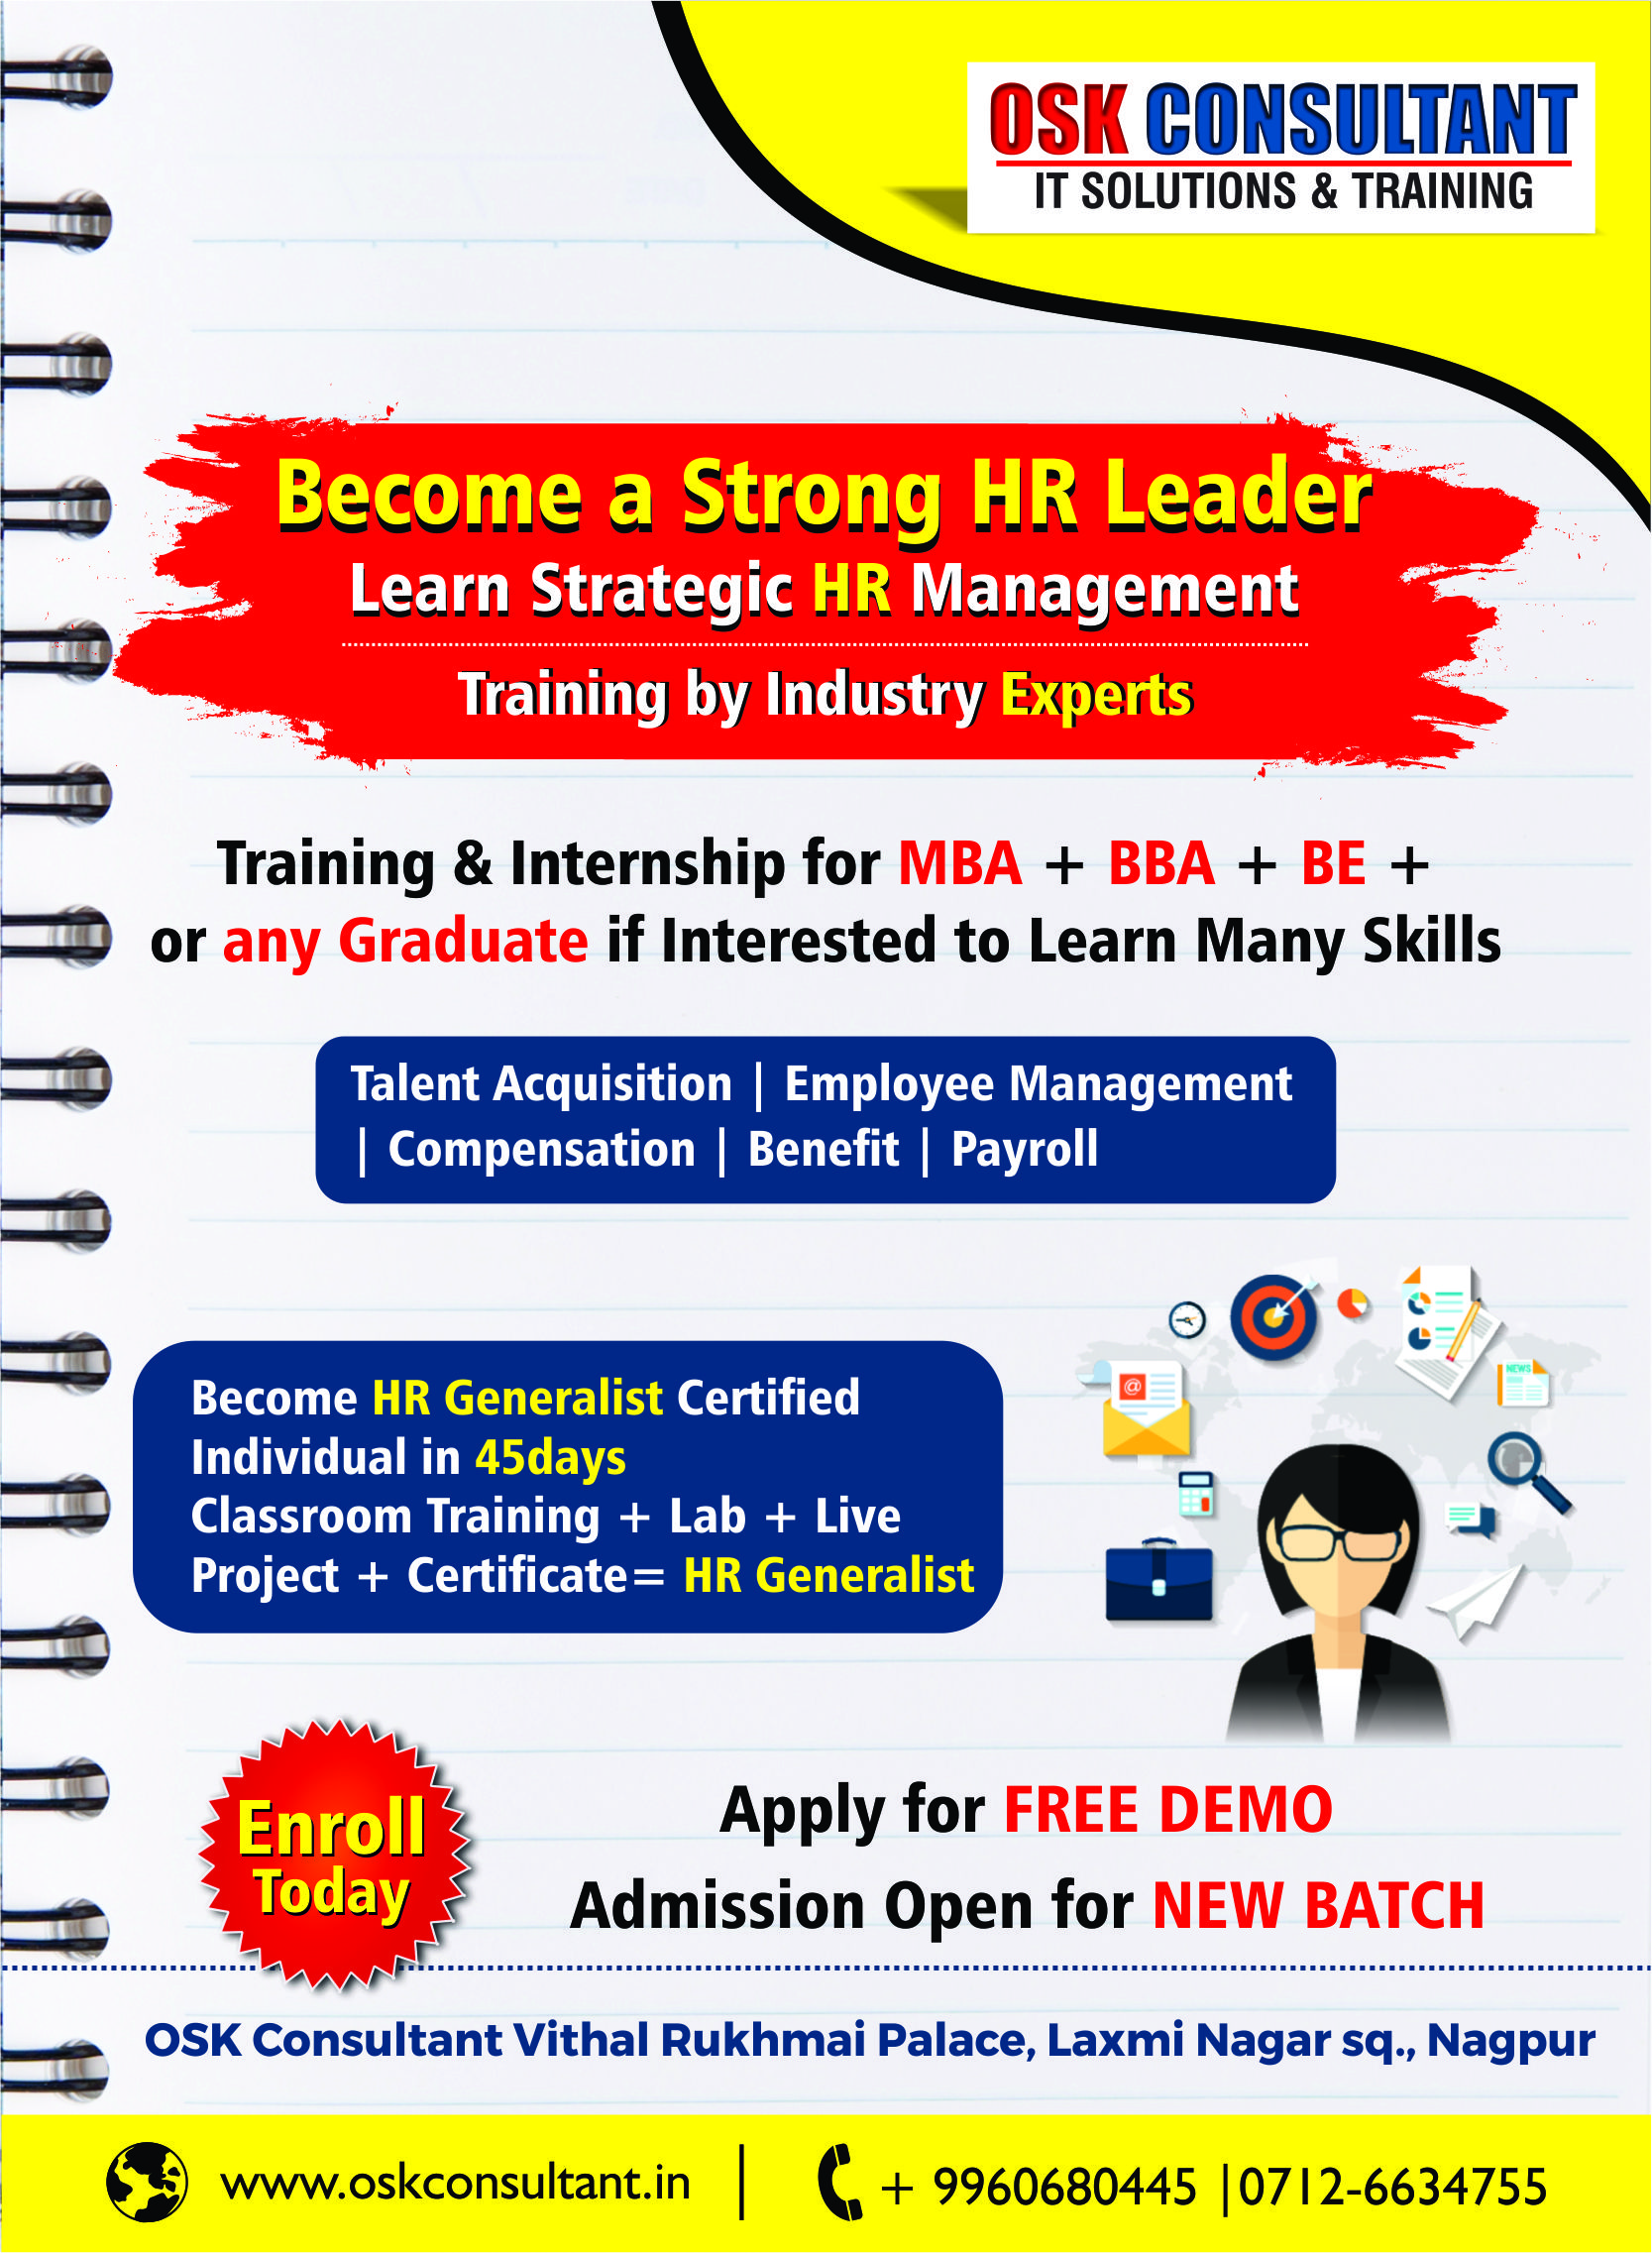 HR Practical Training, Core HR Training which involves Procurement